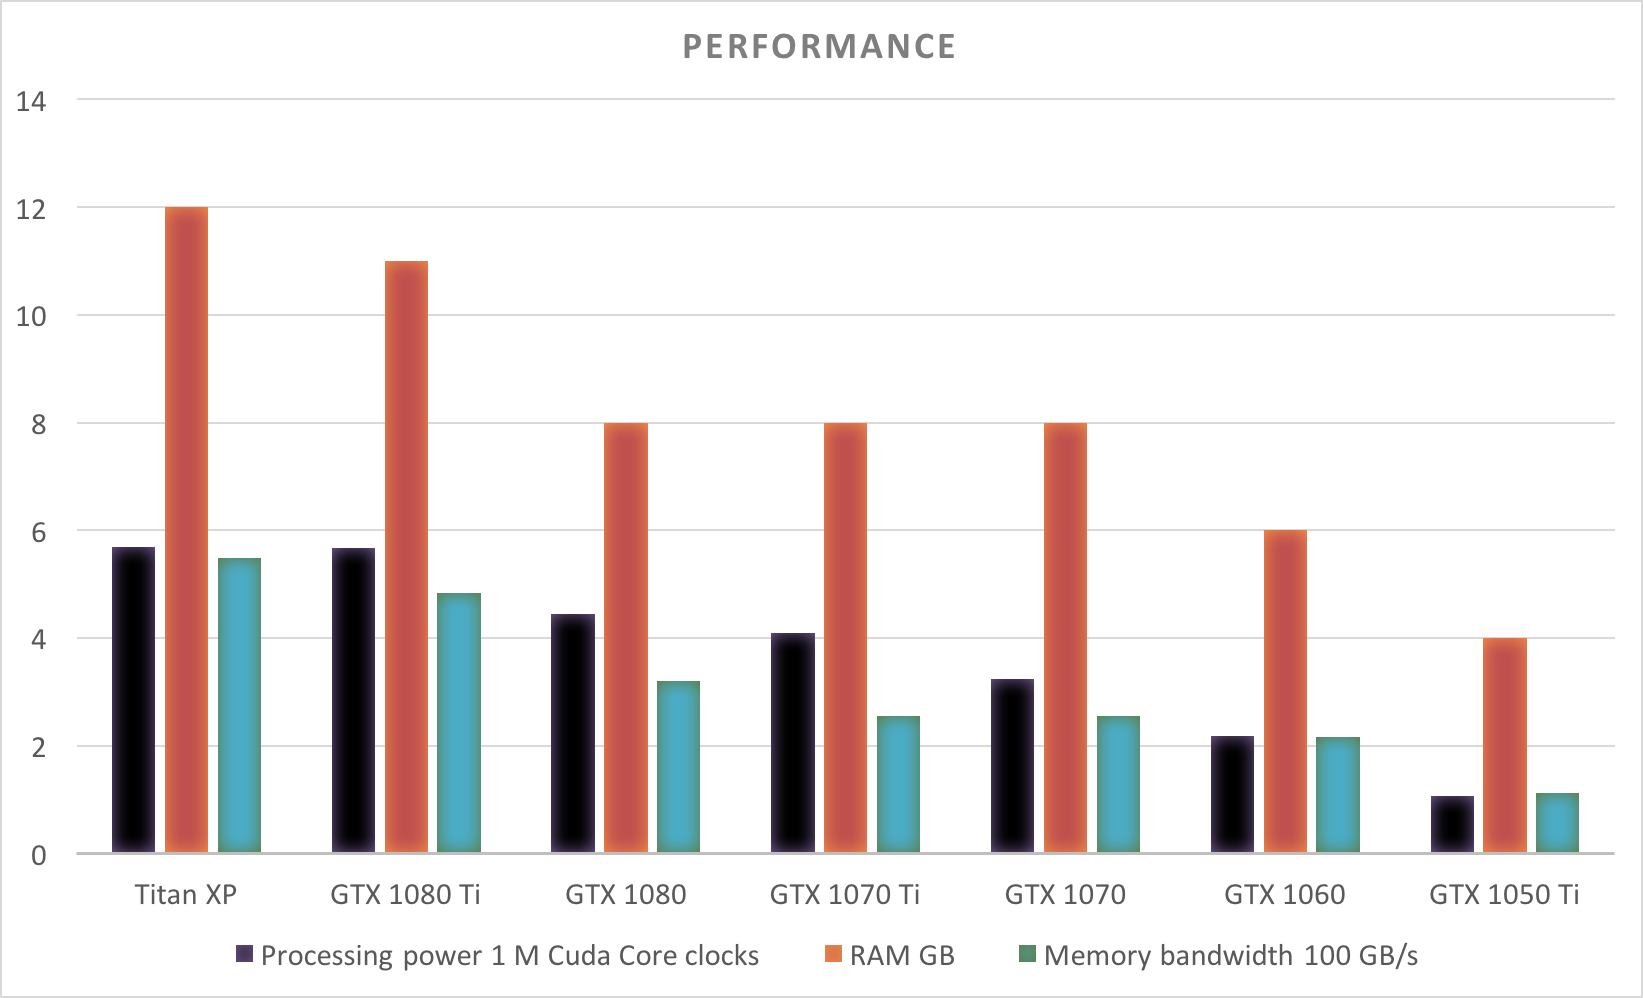 Here Is Performance Comparison Between All Cards Check The Individual Card Profiles Below Notably Of An Xp And Gtx 1080 Ti Very